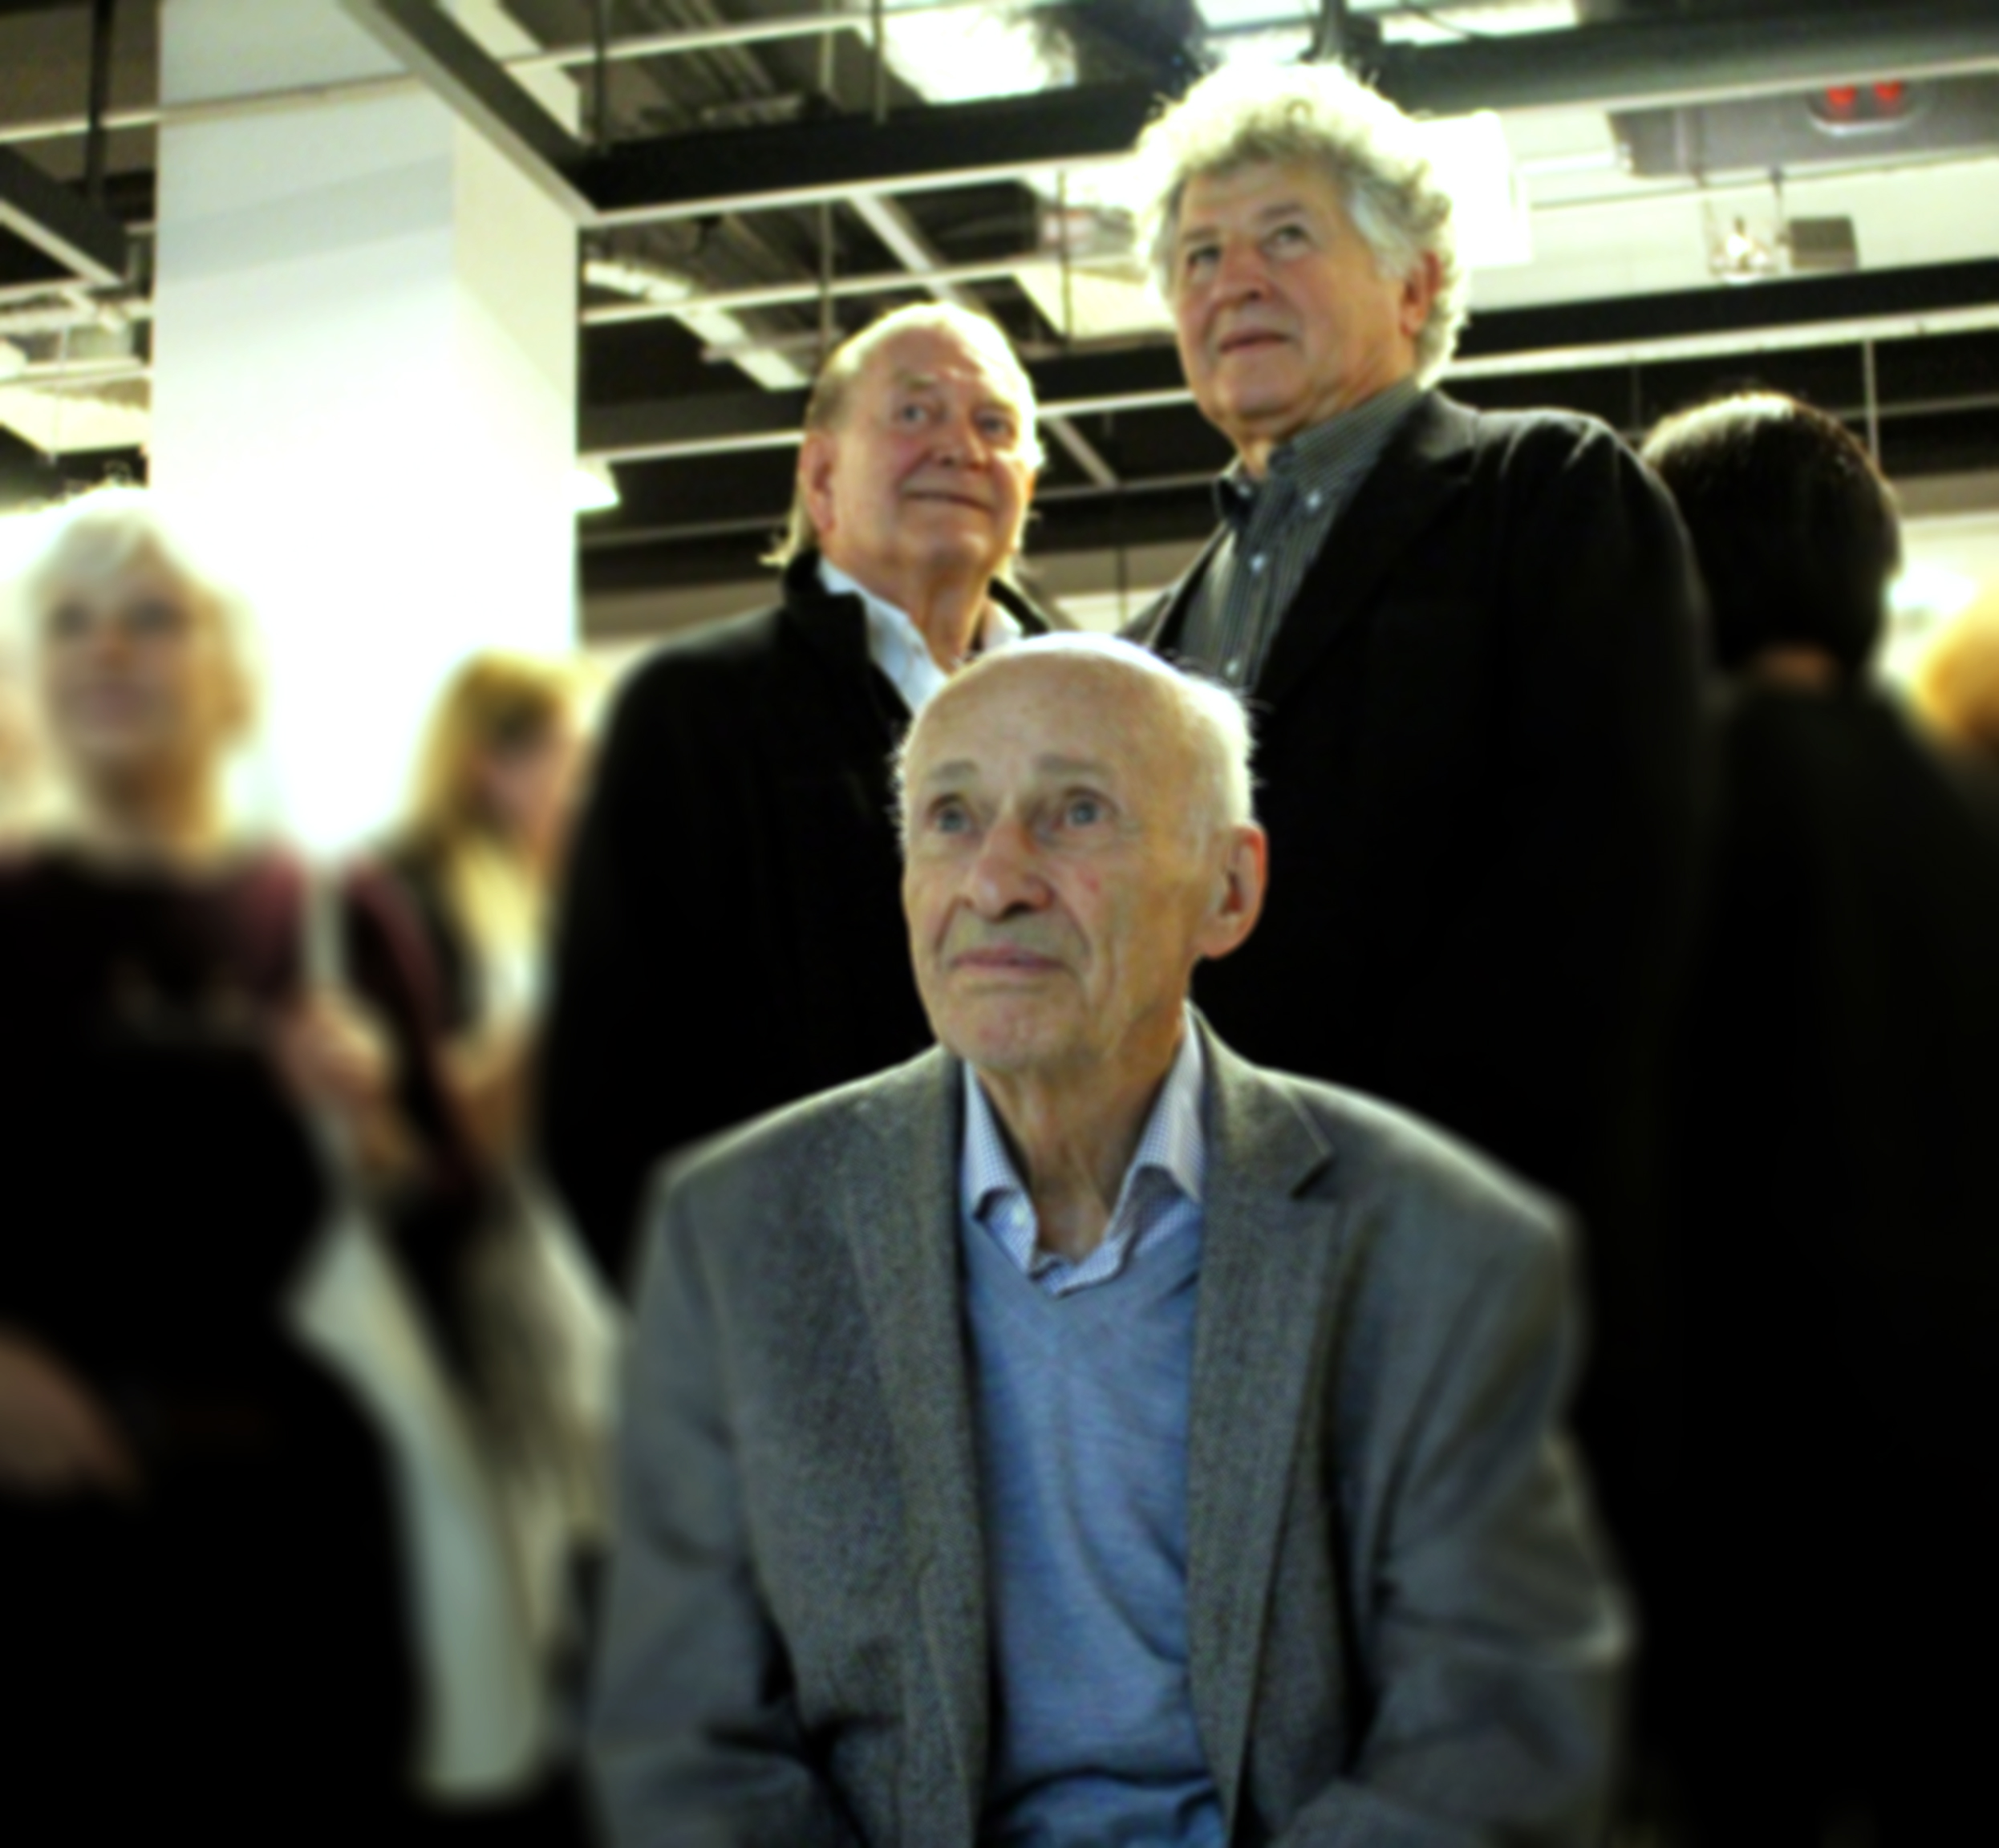 vernissage_expo_erro_ejv_04oct17_12.jpg